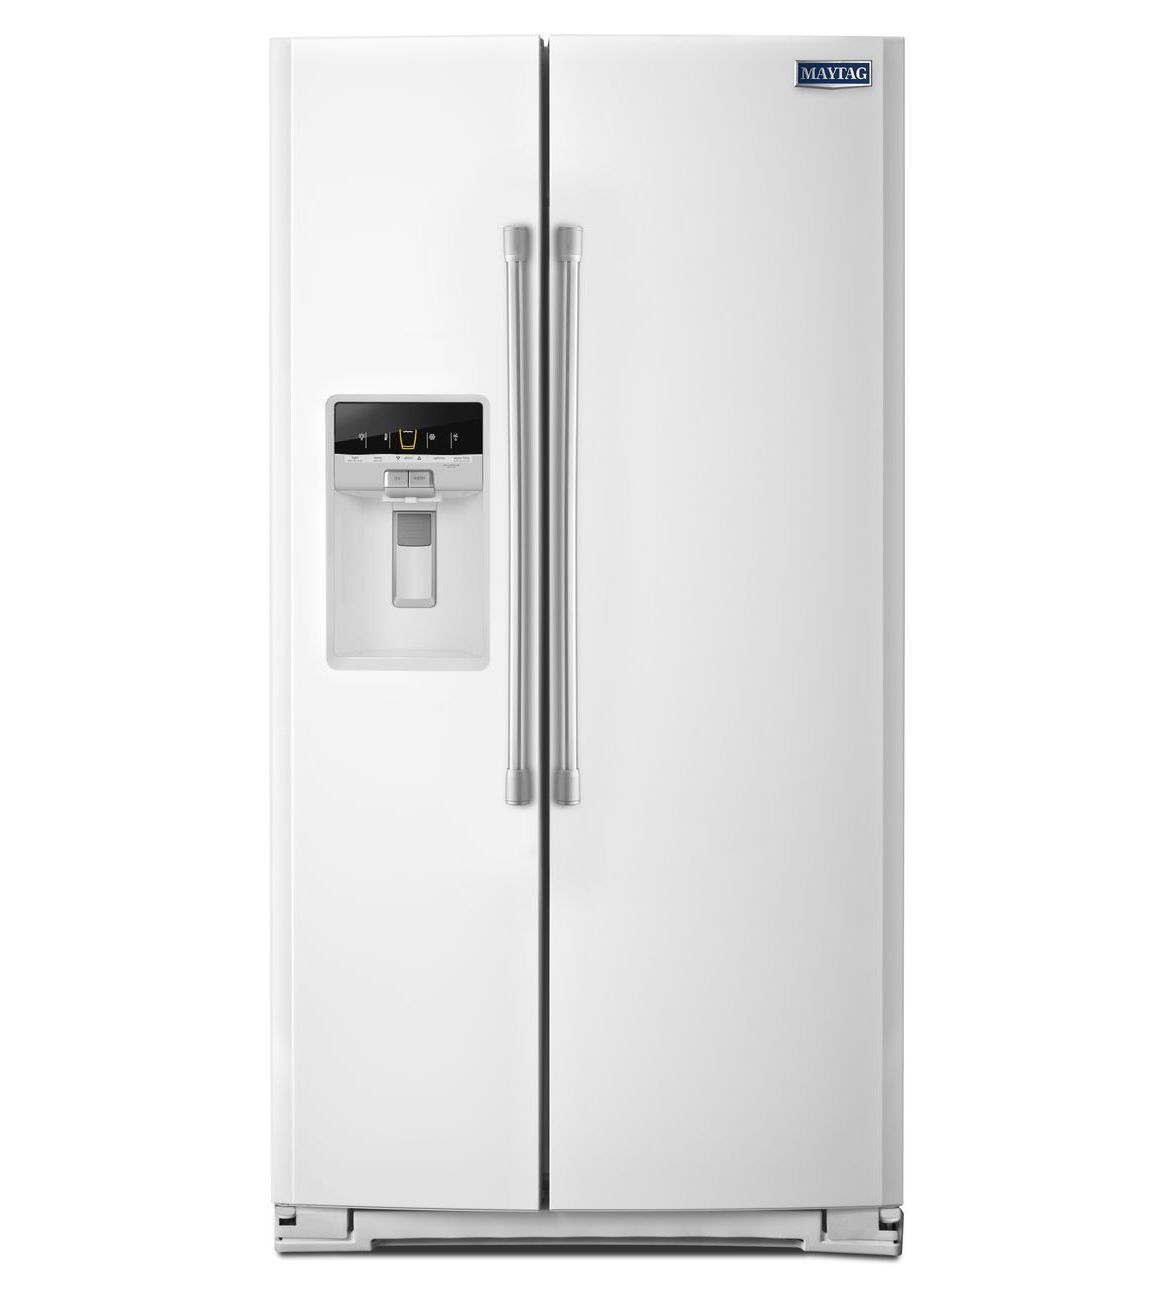 Maytag french door refrigerator reviews - Maytag Side By Side Refrigerator Review